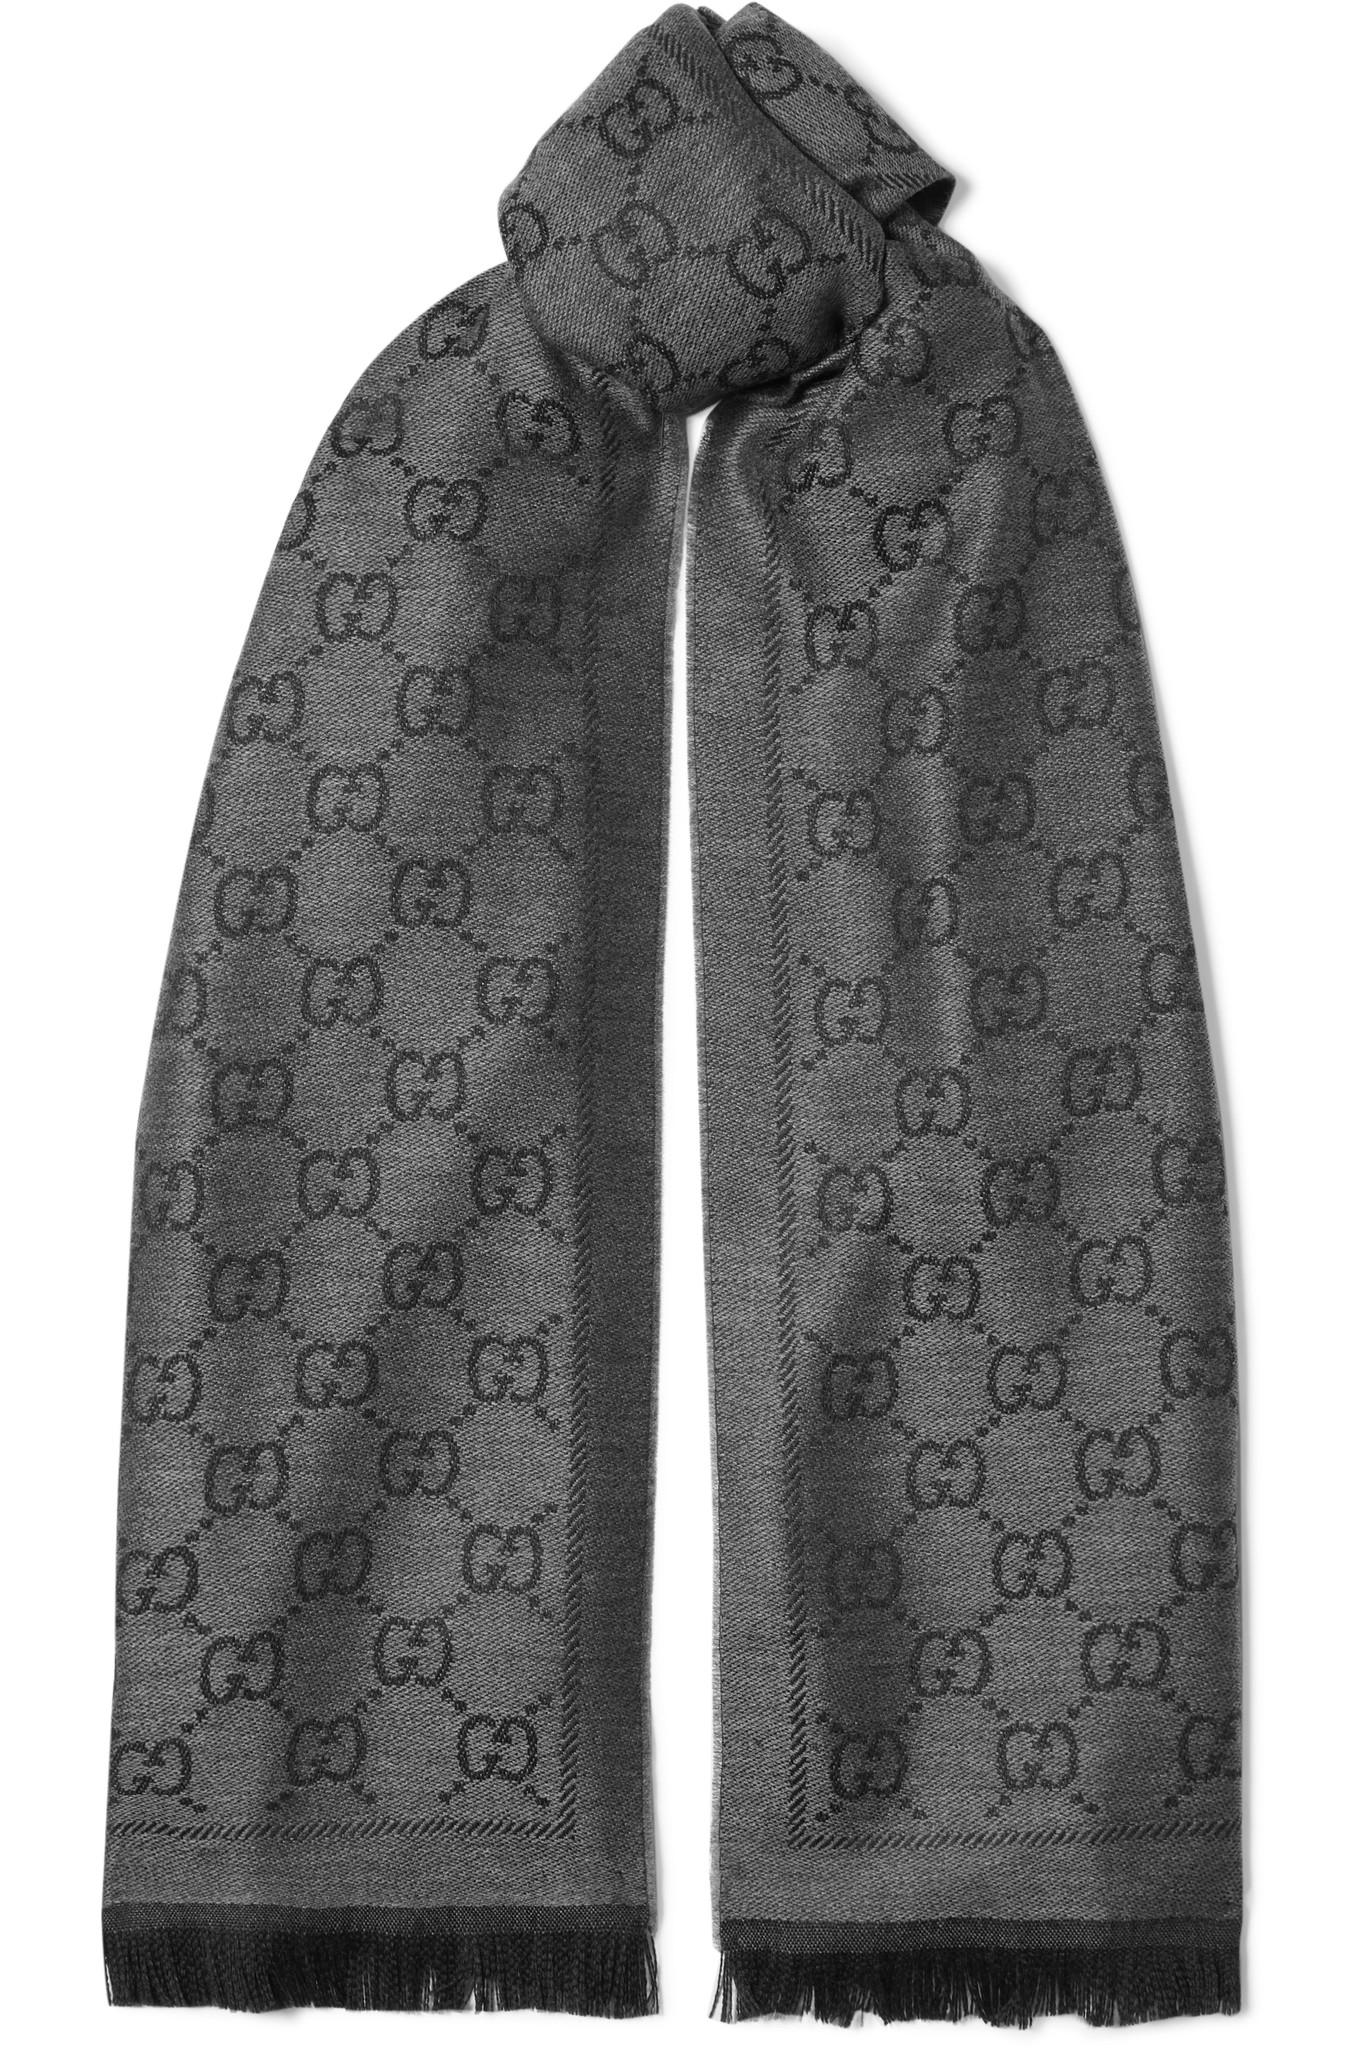 307c9e13a63 Gucci Fringed Wool-jacquard Scarf in Gray - Lyst